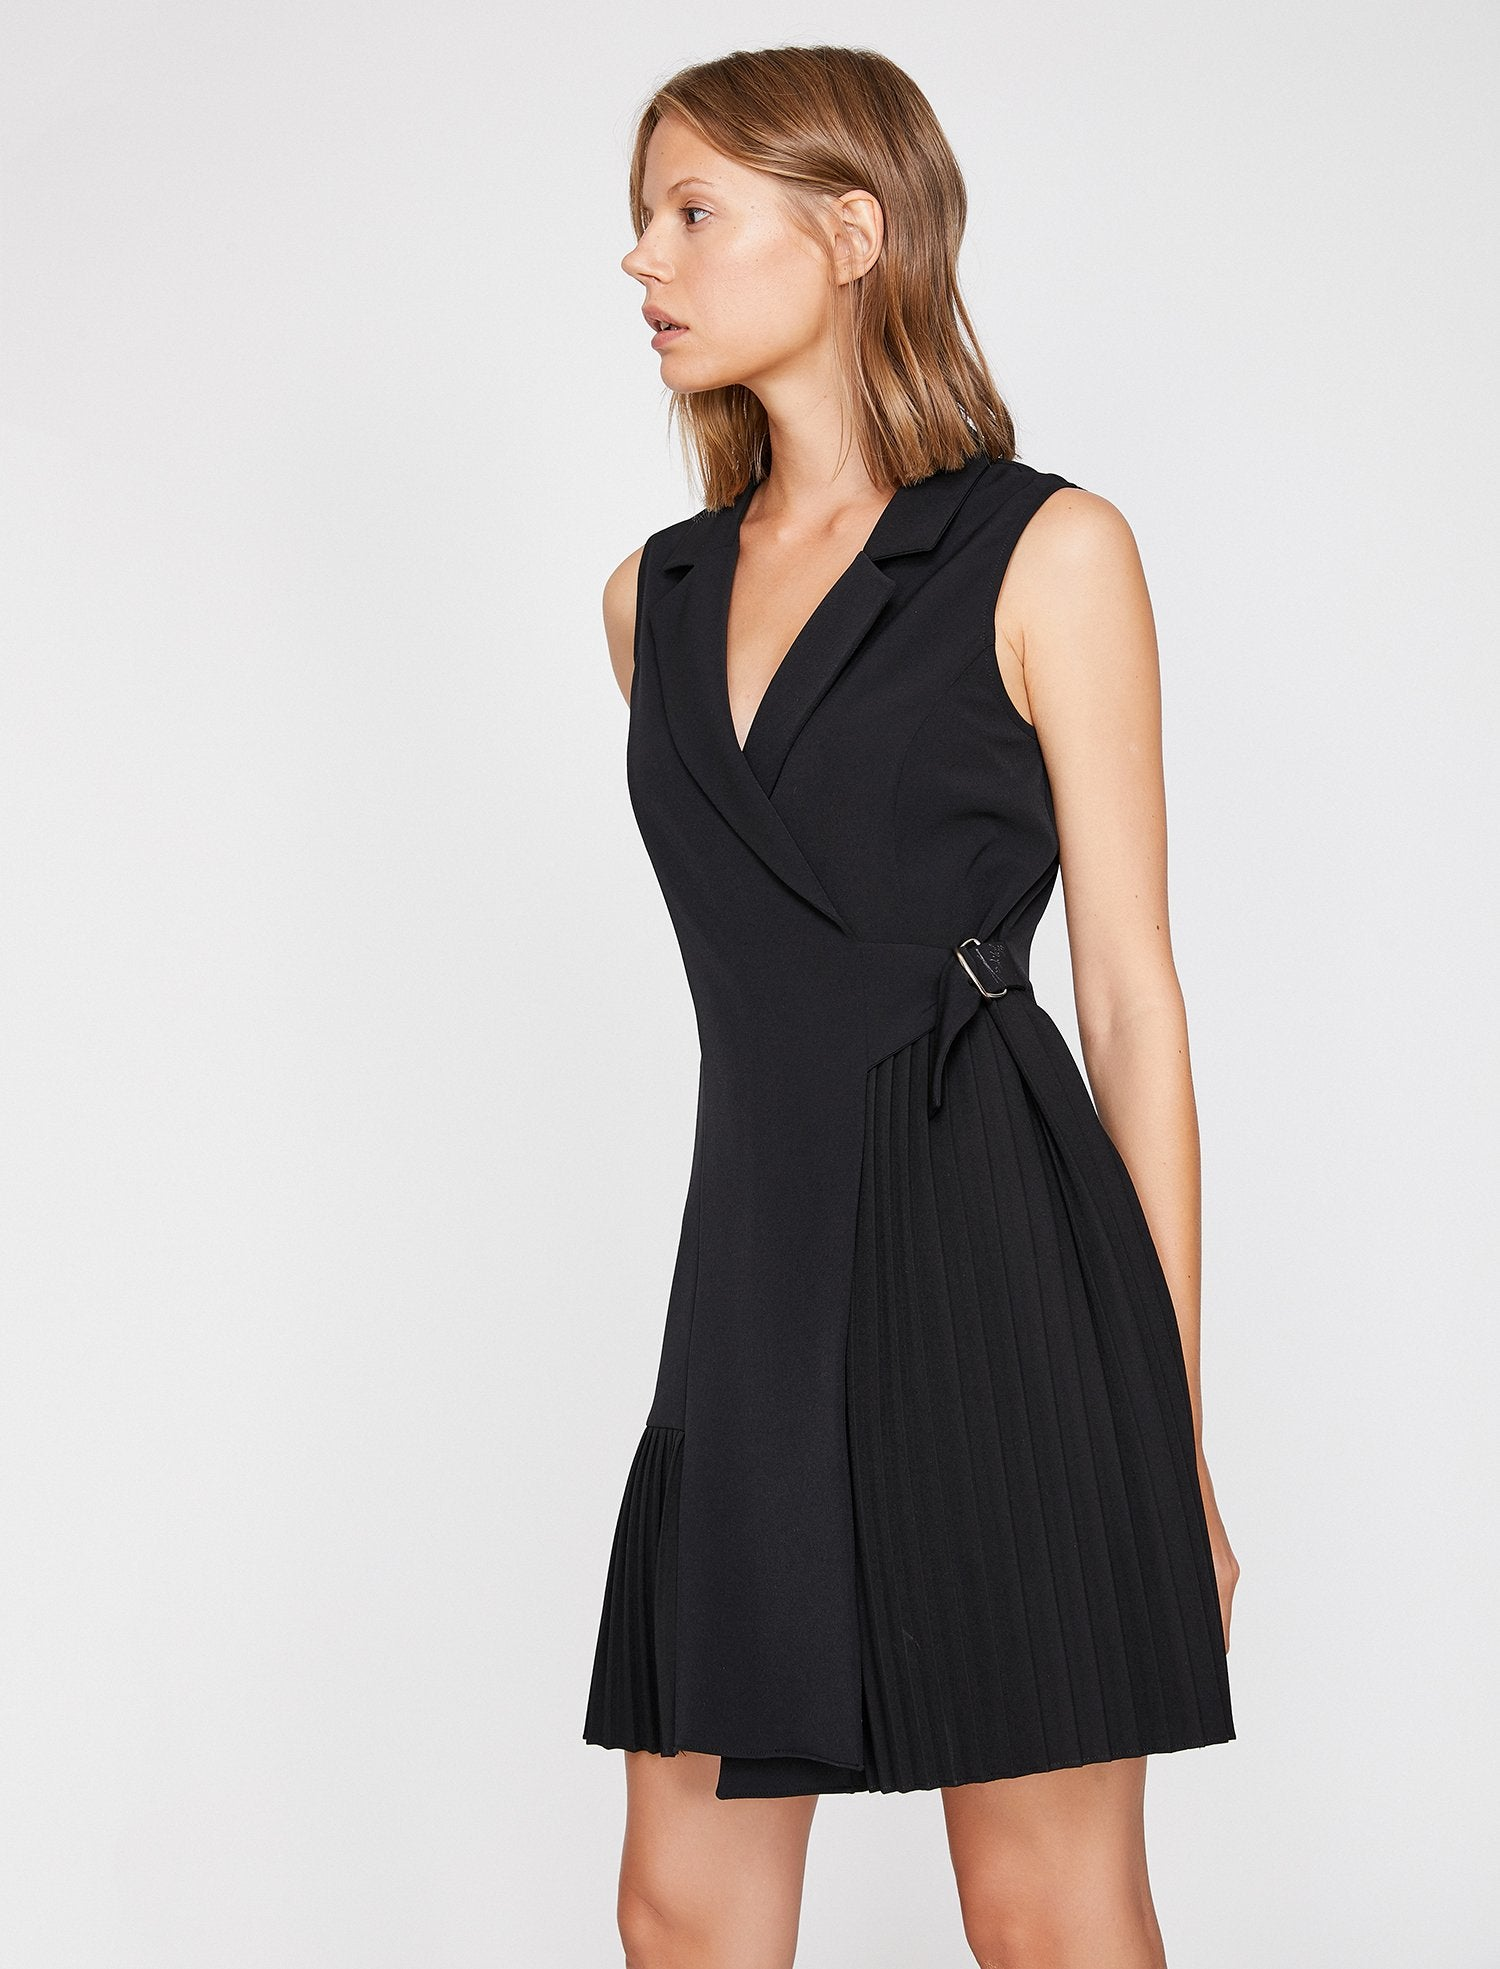 Sleeveless Waist-Tie Dress